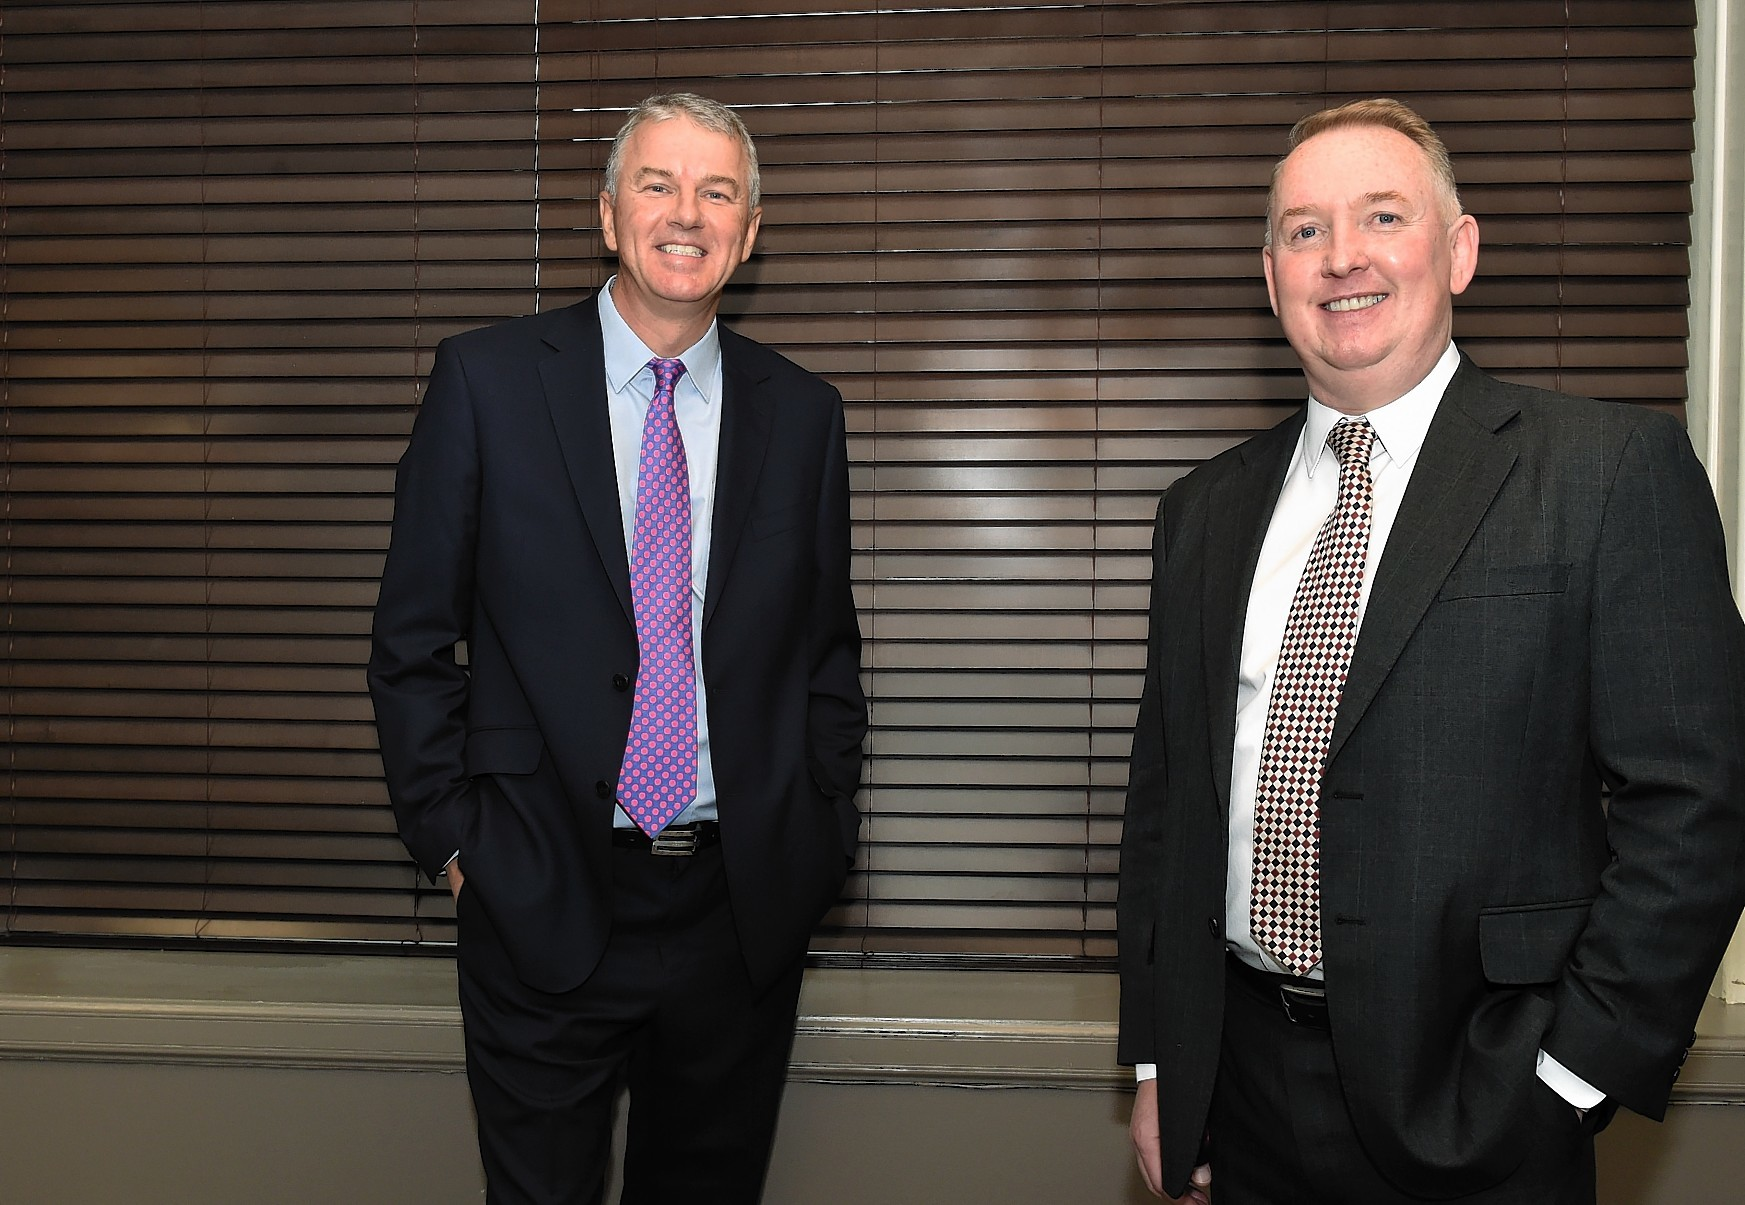 Doug Webster (left), formerly of Shell, and Peter Black, EnergySys MD